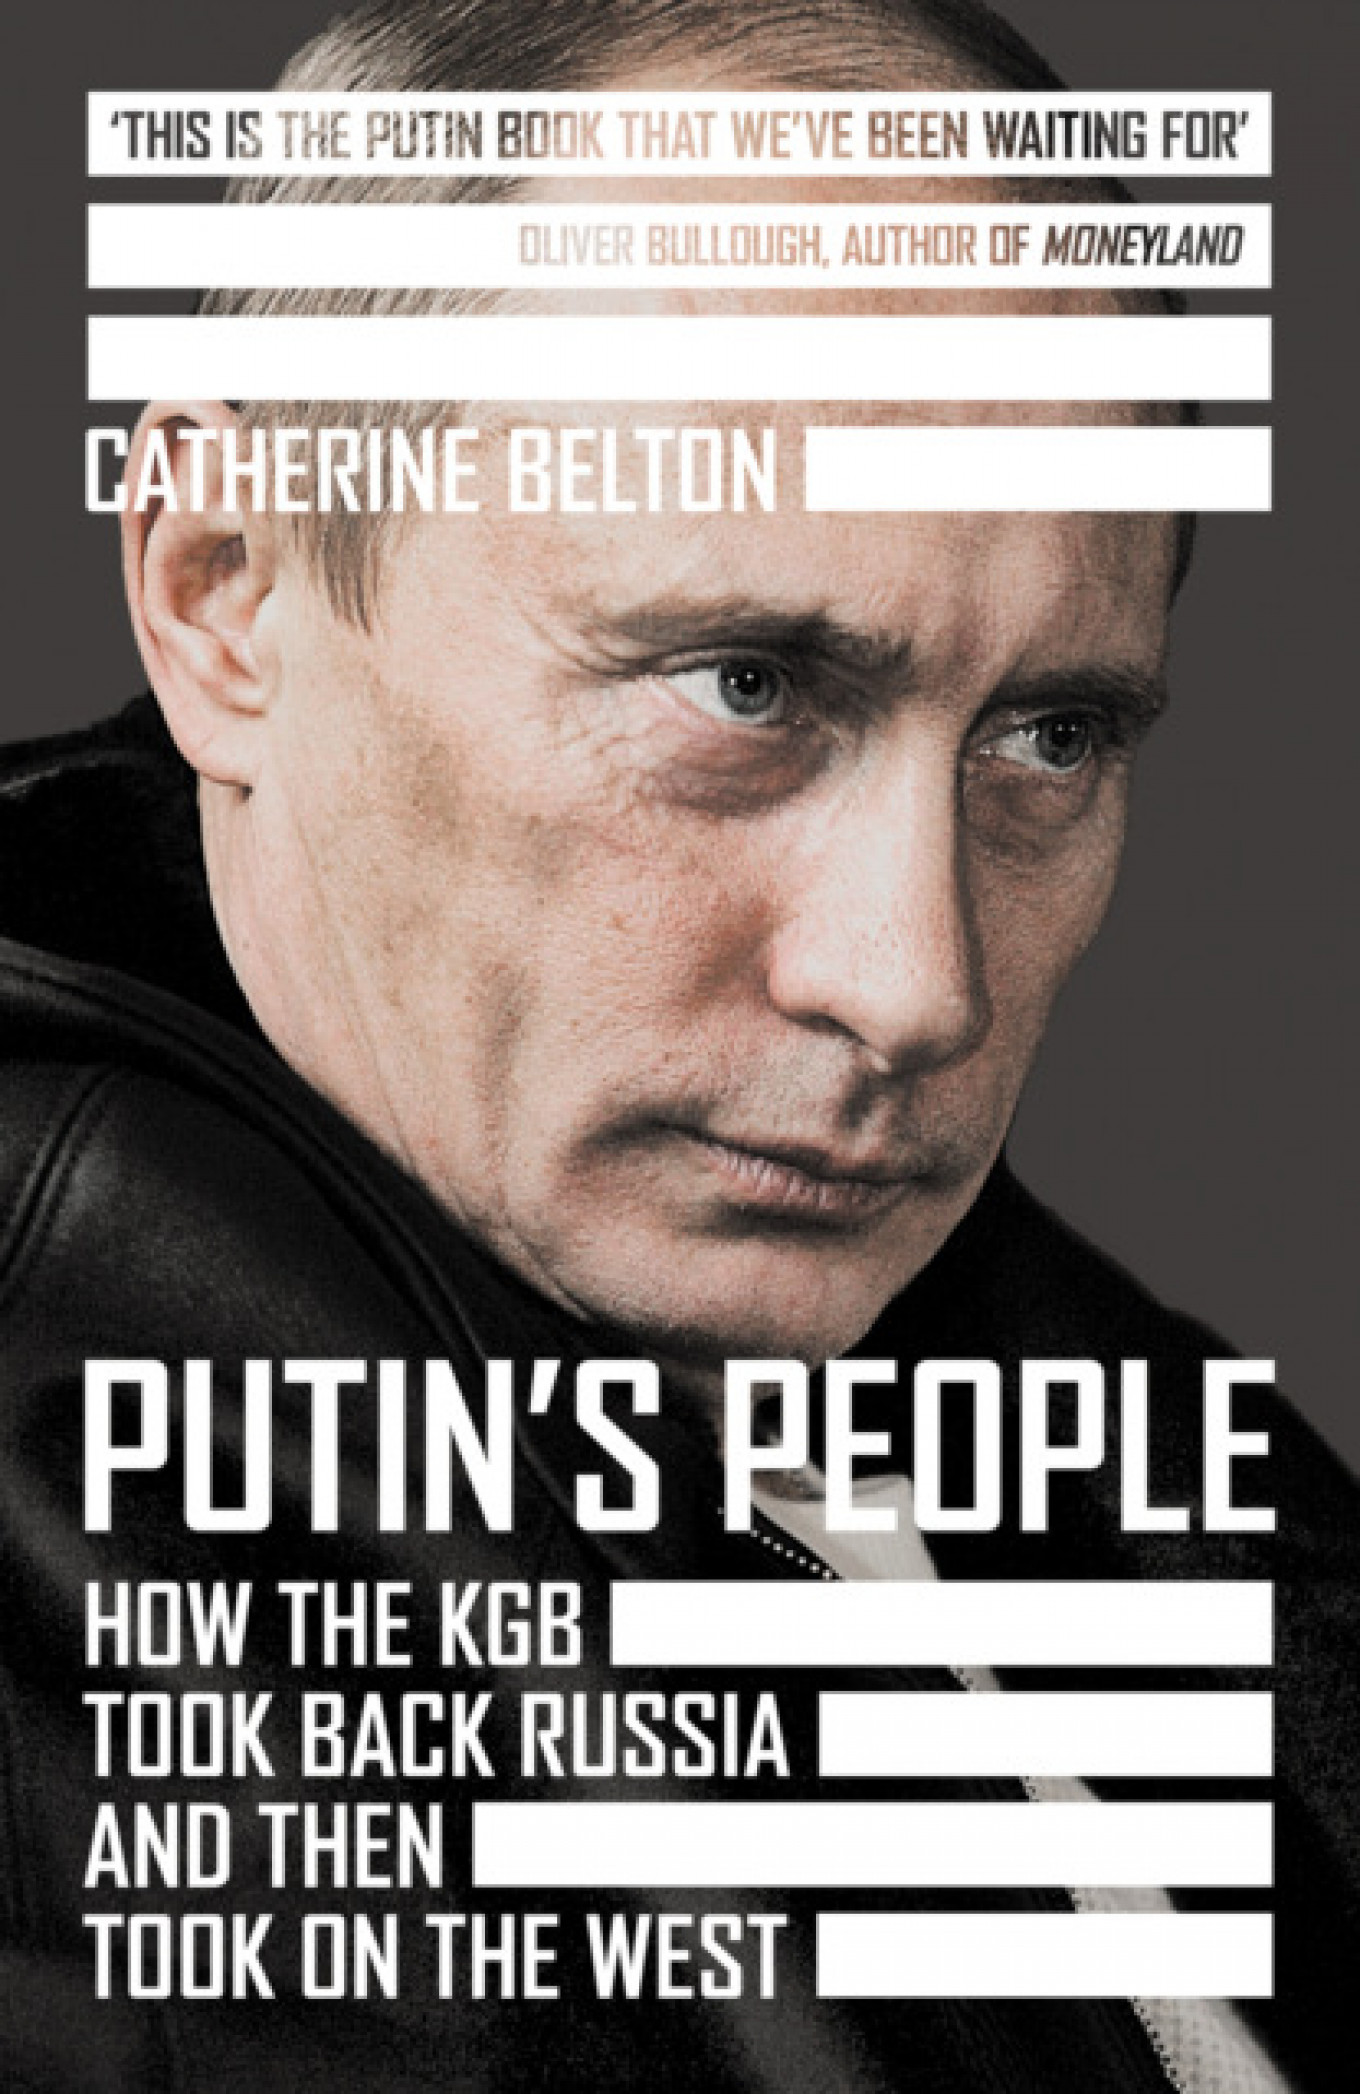 The book was published last summer to widespread acclaim. Catherine Belton